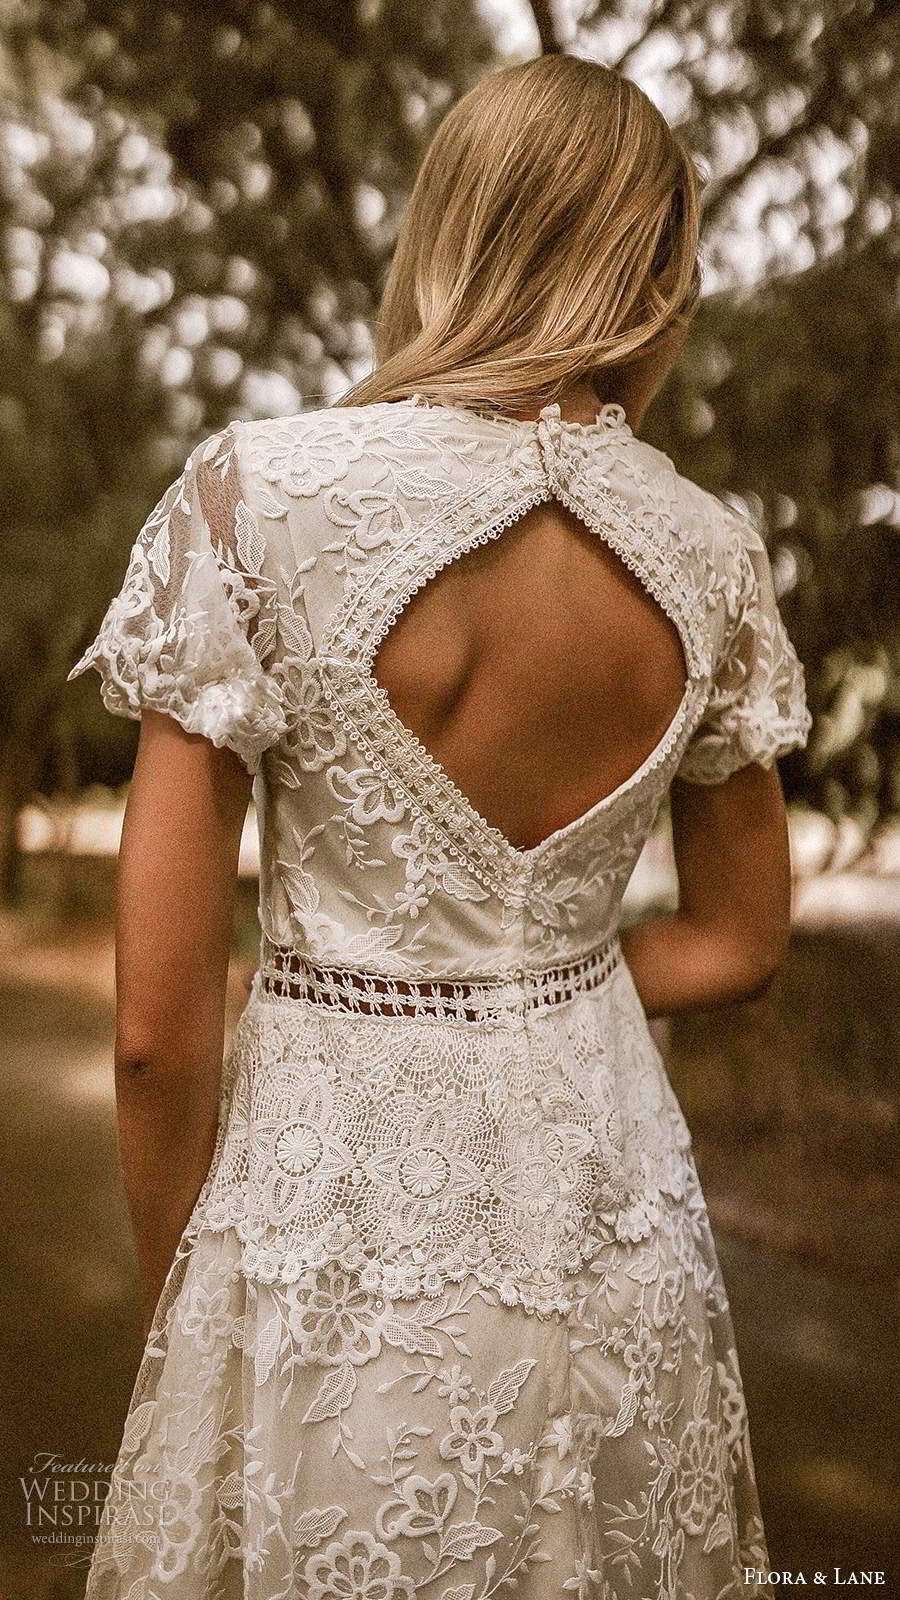 flora and lane 2019 bridal sheer short sleeves v neckline fully embellished lace romantic a line ball gown wedding dress keyhole back chapel train (5) zbv